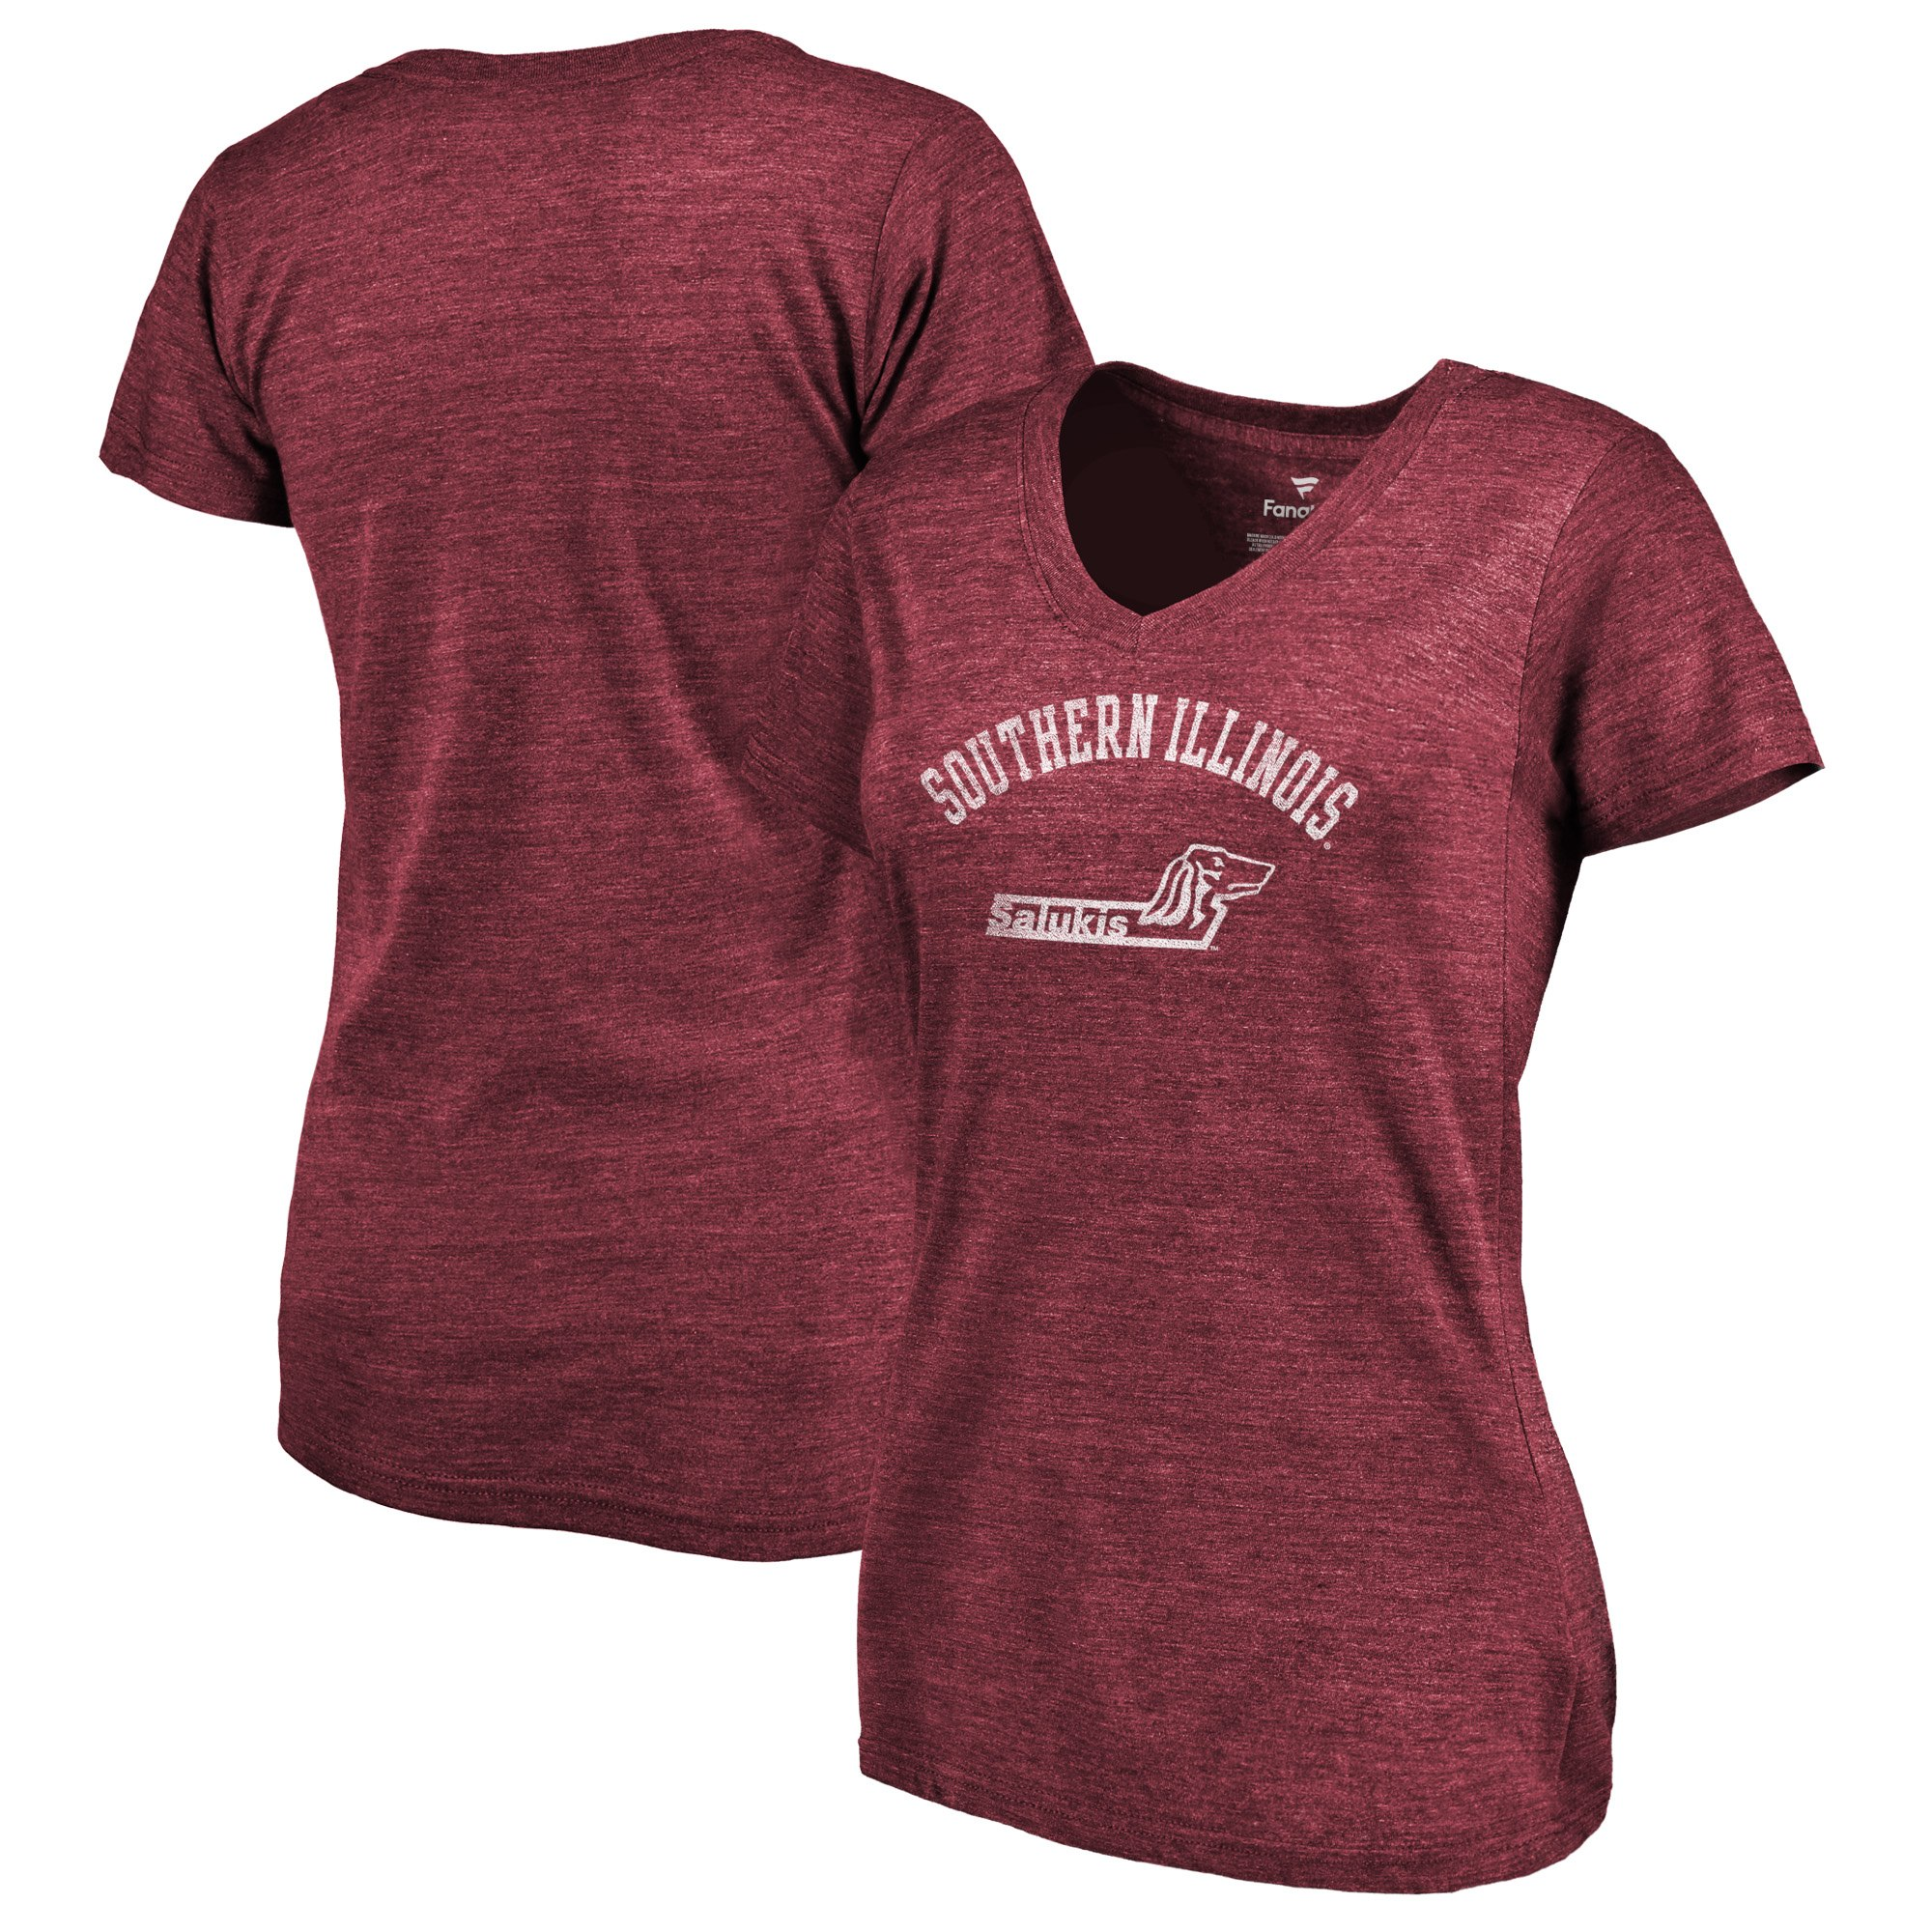 2020 NCAA Fanatics Branded Southern Illinois Salukis Women Garnet Vault Arch over Logo TriBlend VNeck TShirt